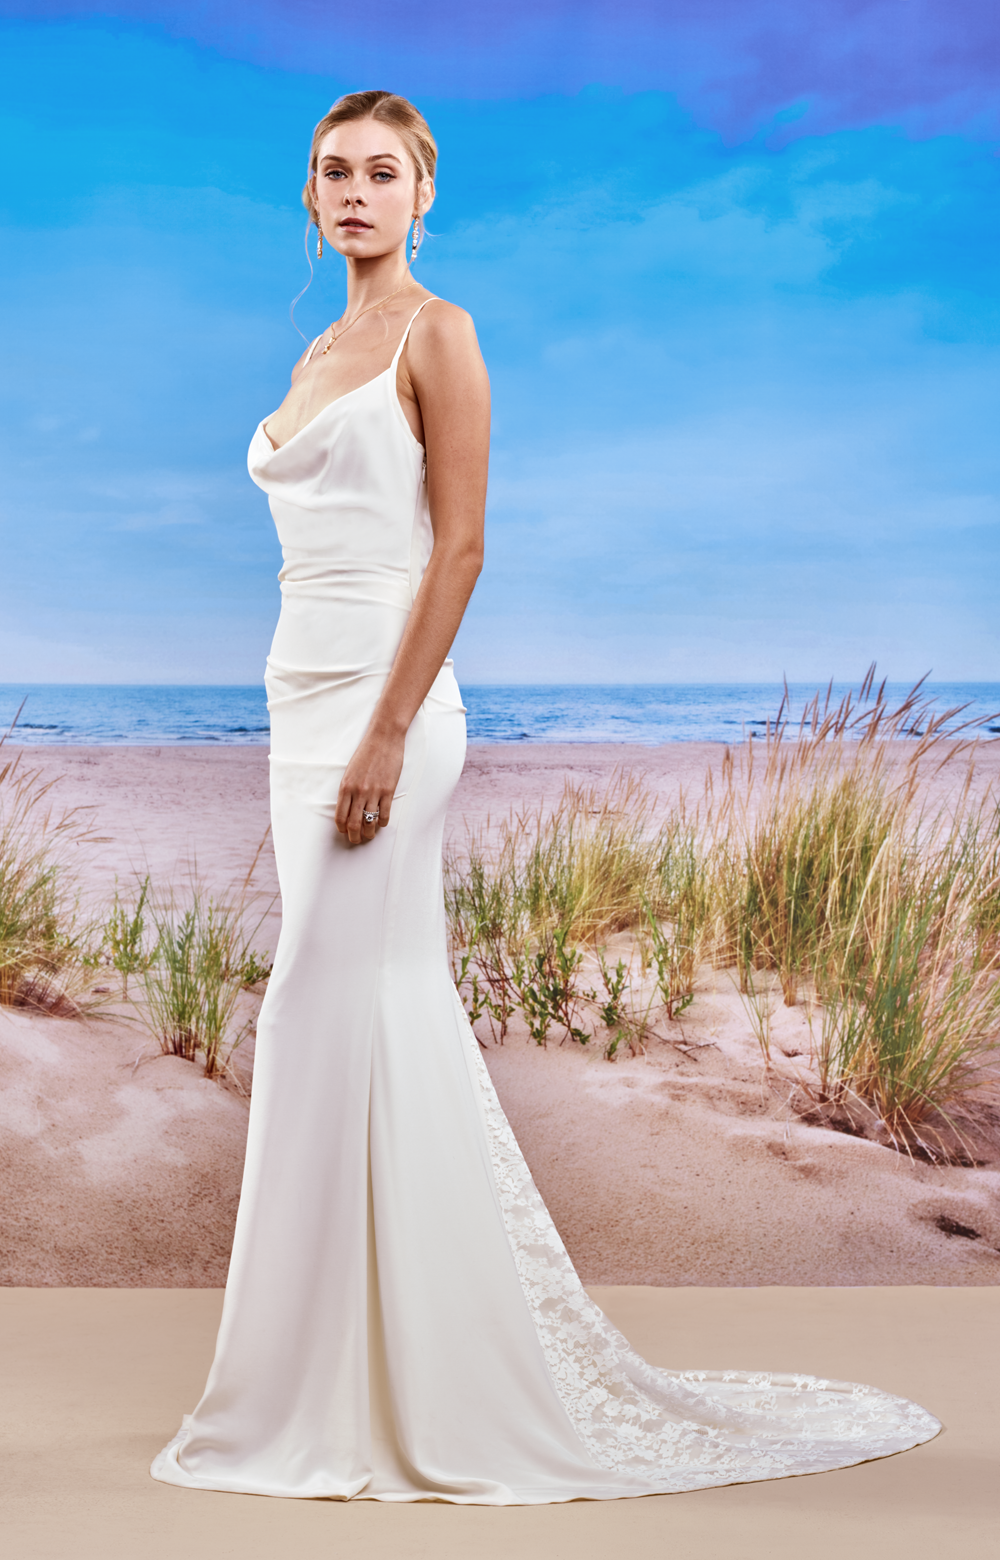 Hampton bridal gown shops nicole miller wedding dresses and lace hampton bridal gown ombrellifo Image collections